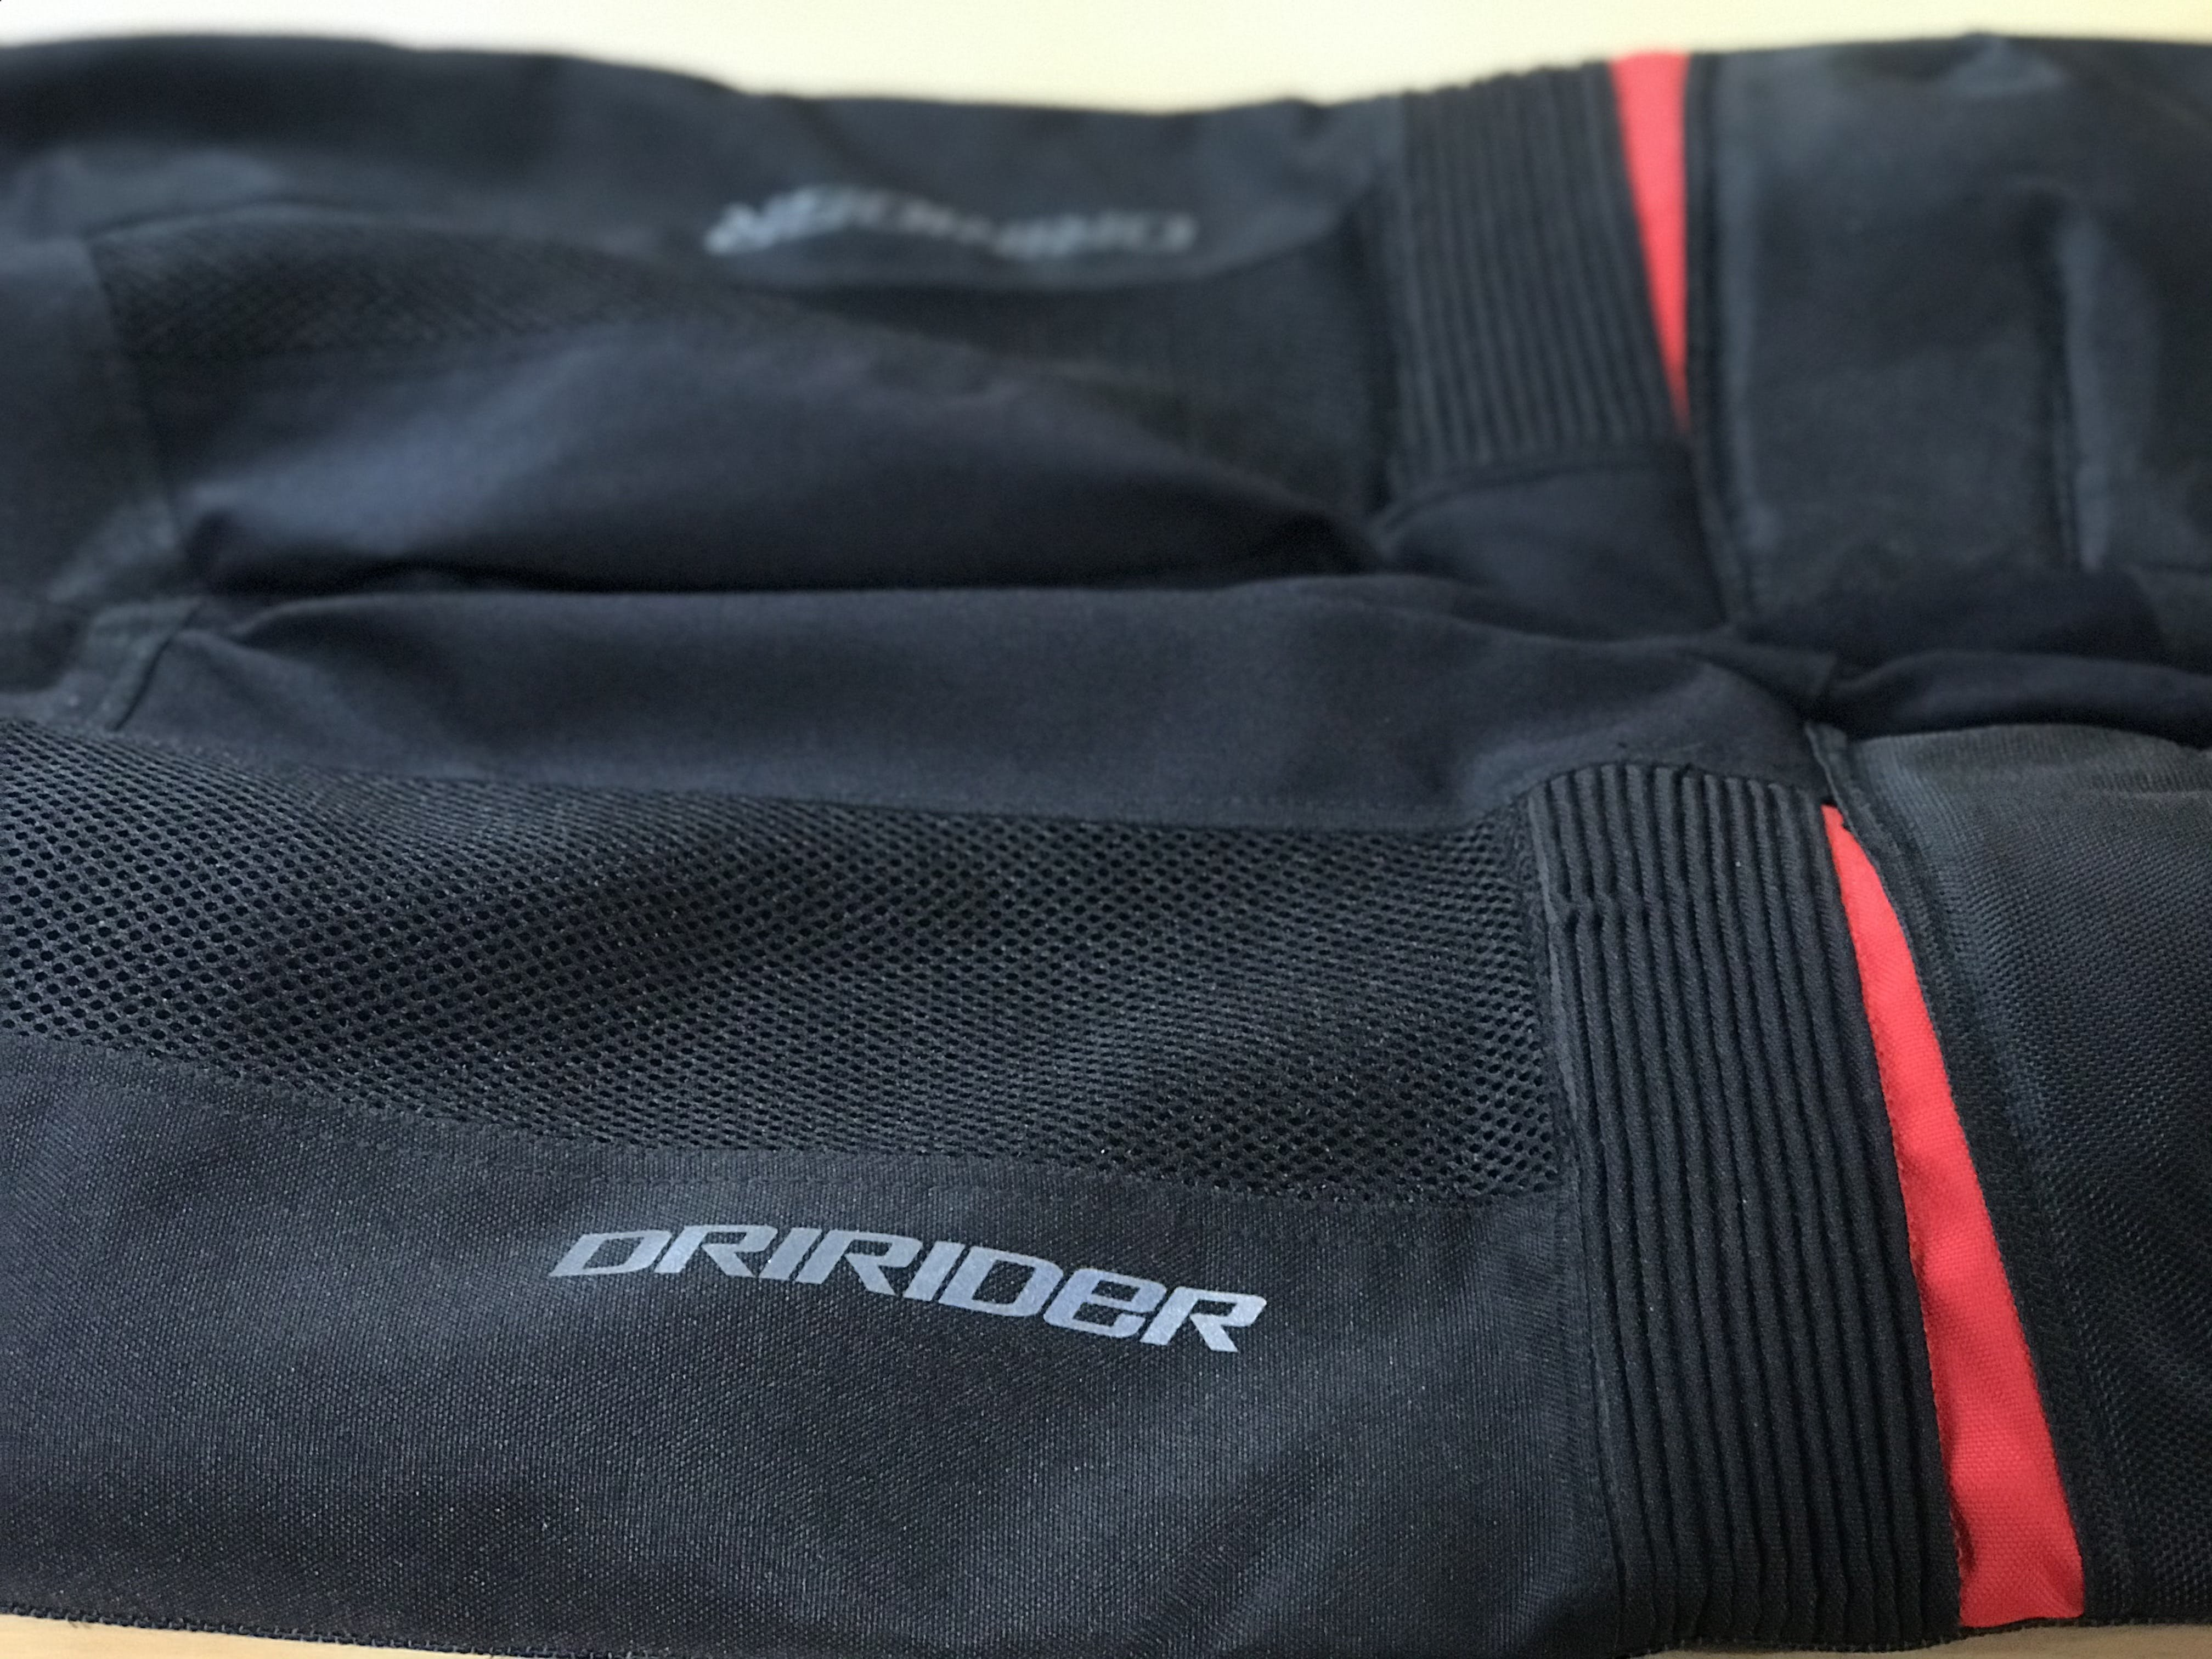 Dri Rider Air Ride textile pant vents in black and red